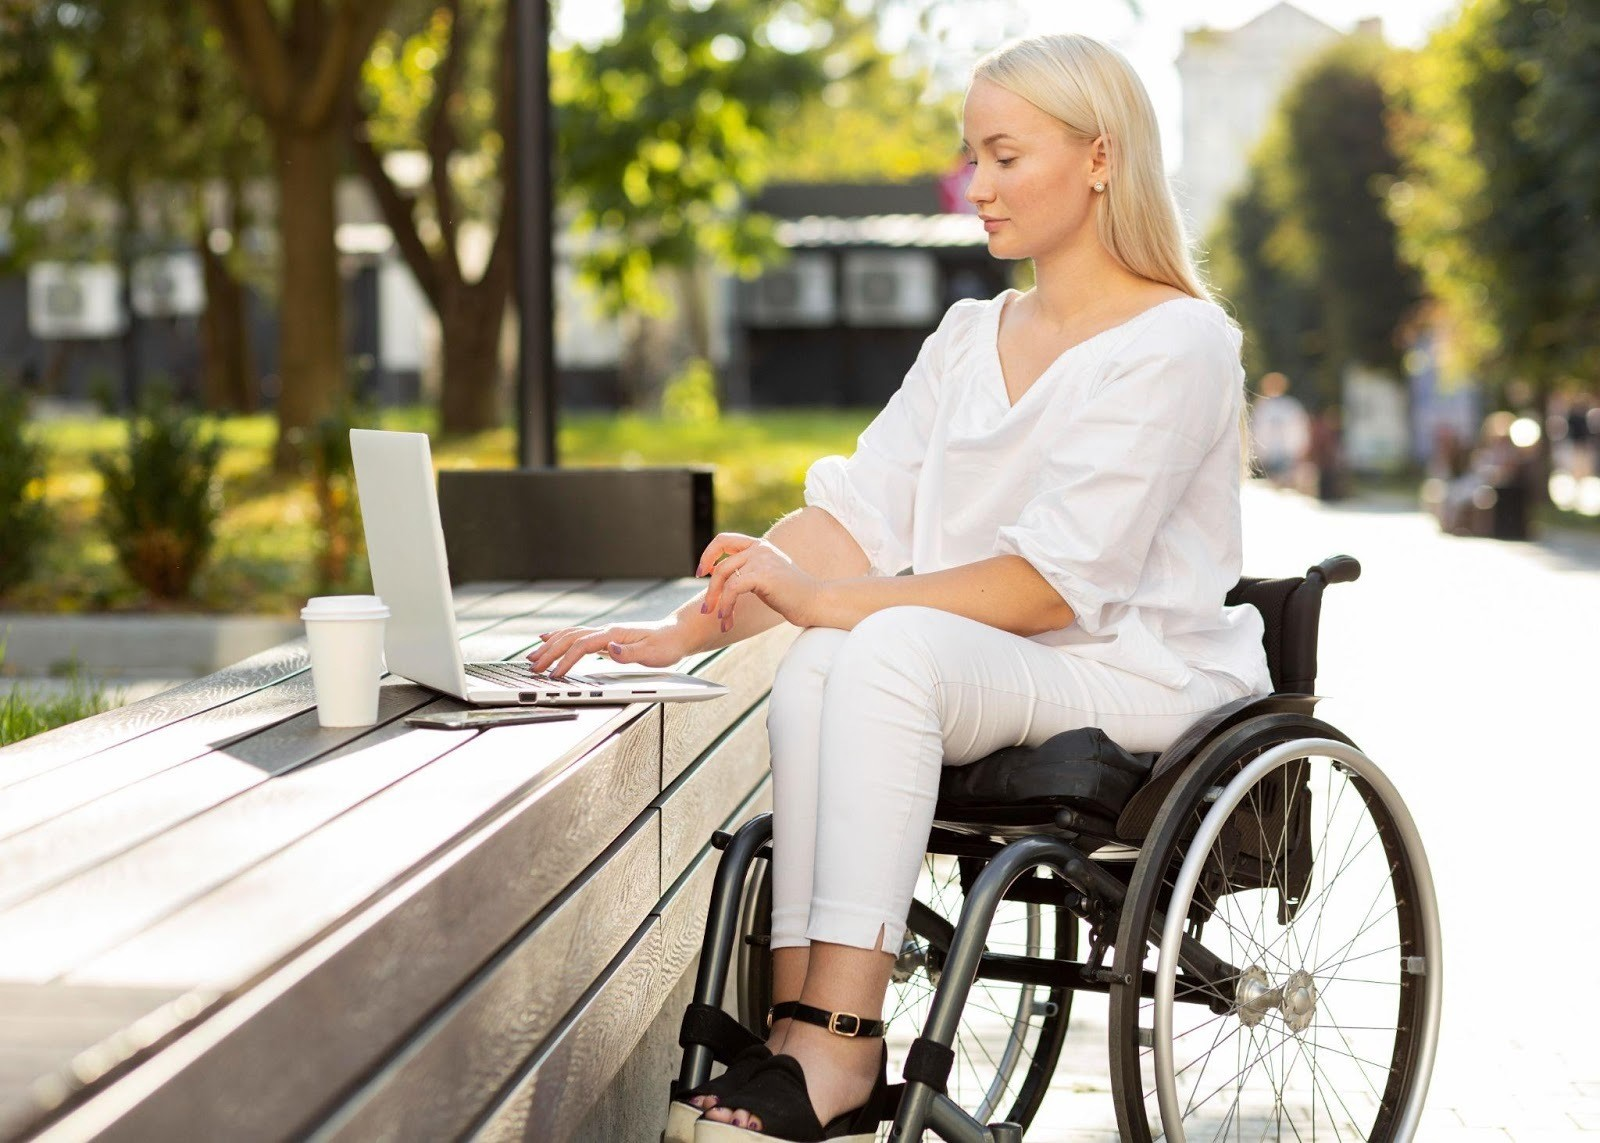 Technology should be used to further the inclusion of people with disabilities